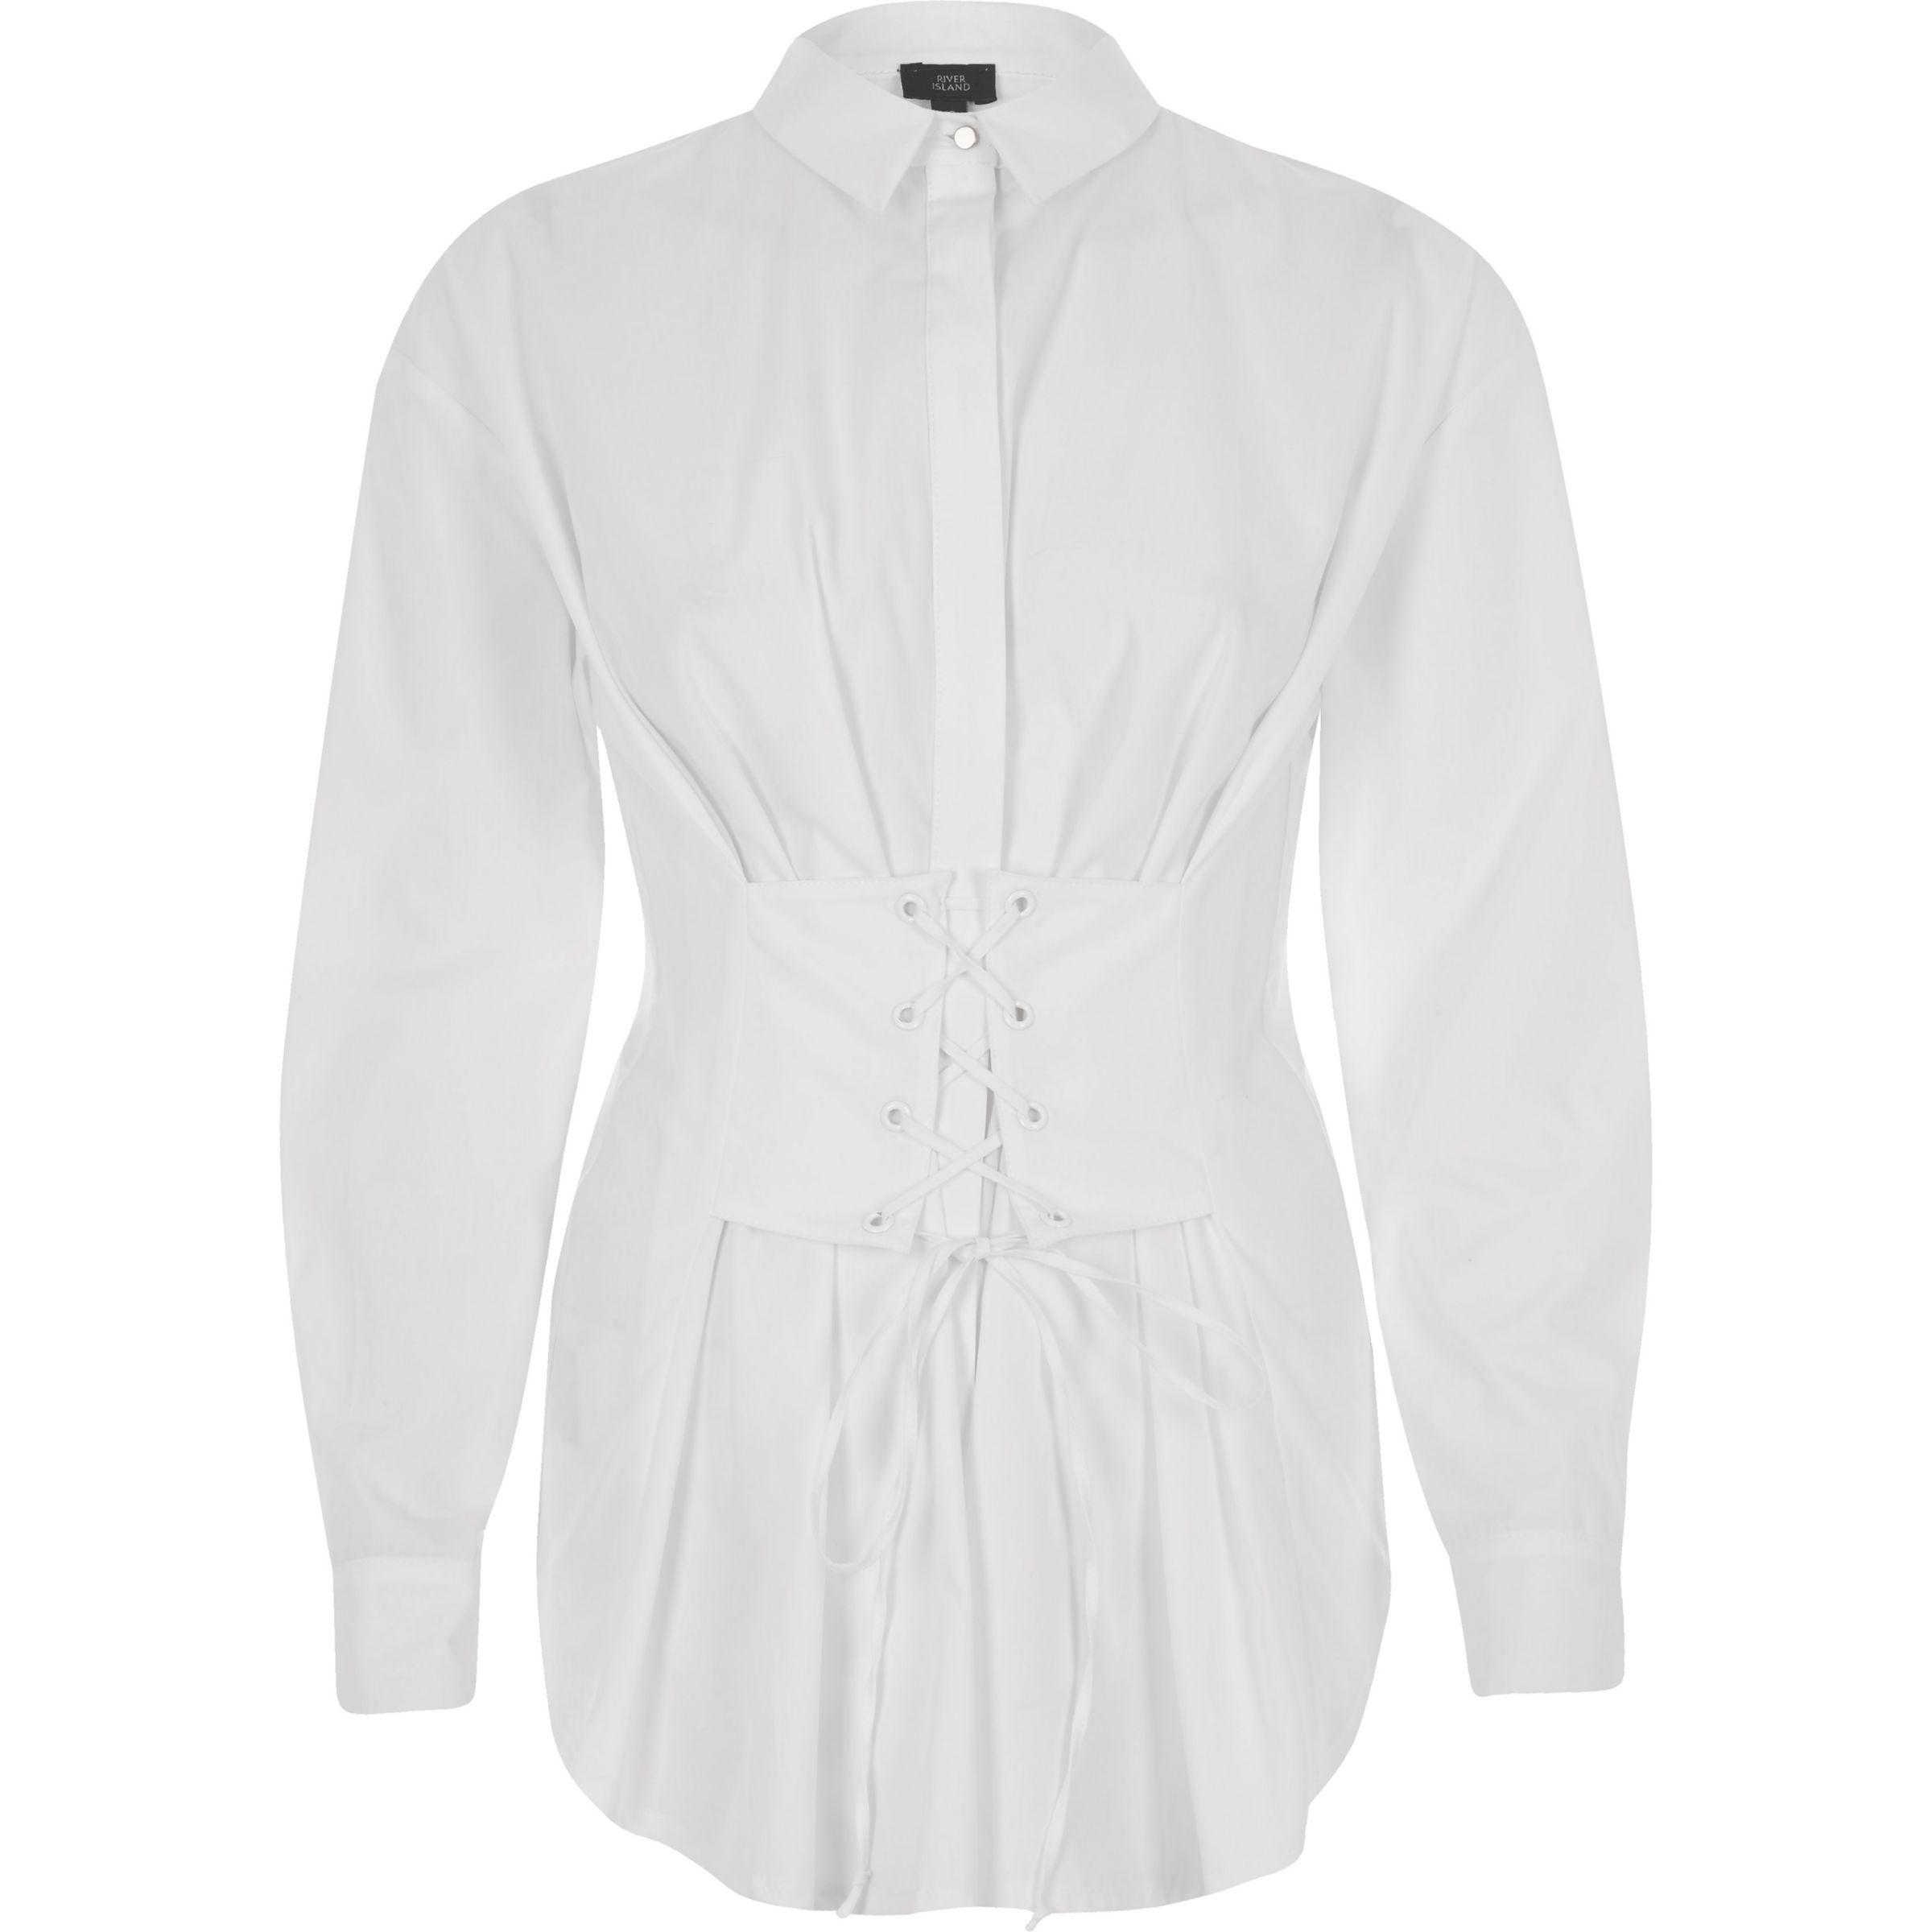 5d32af586dfe9 Lyst - River Island White Corset Long Sleeve Oversized Shirt in White